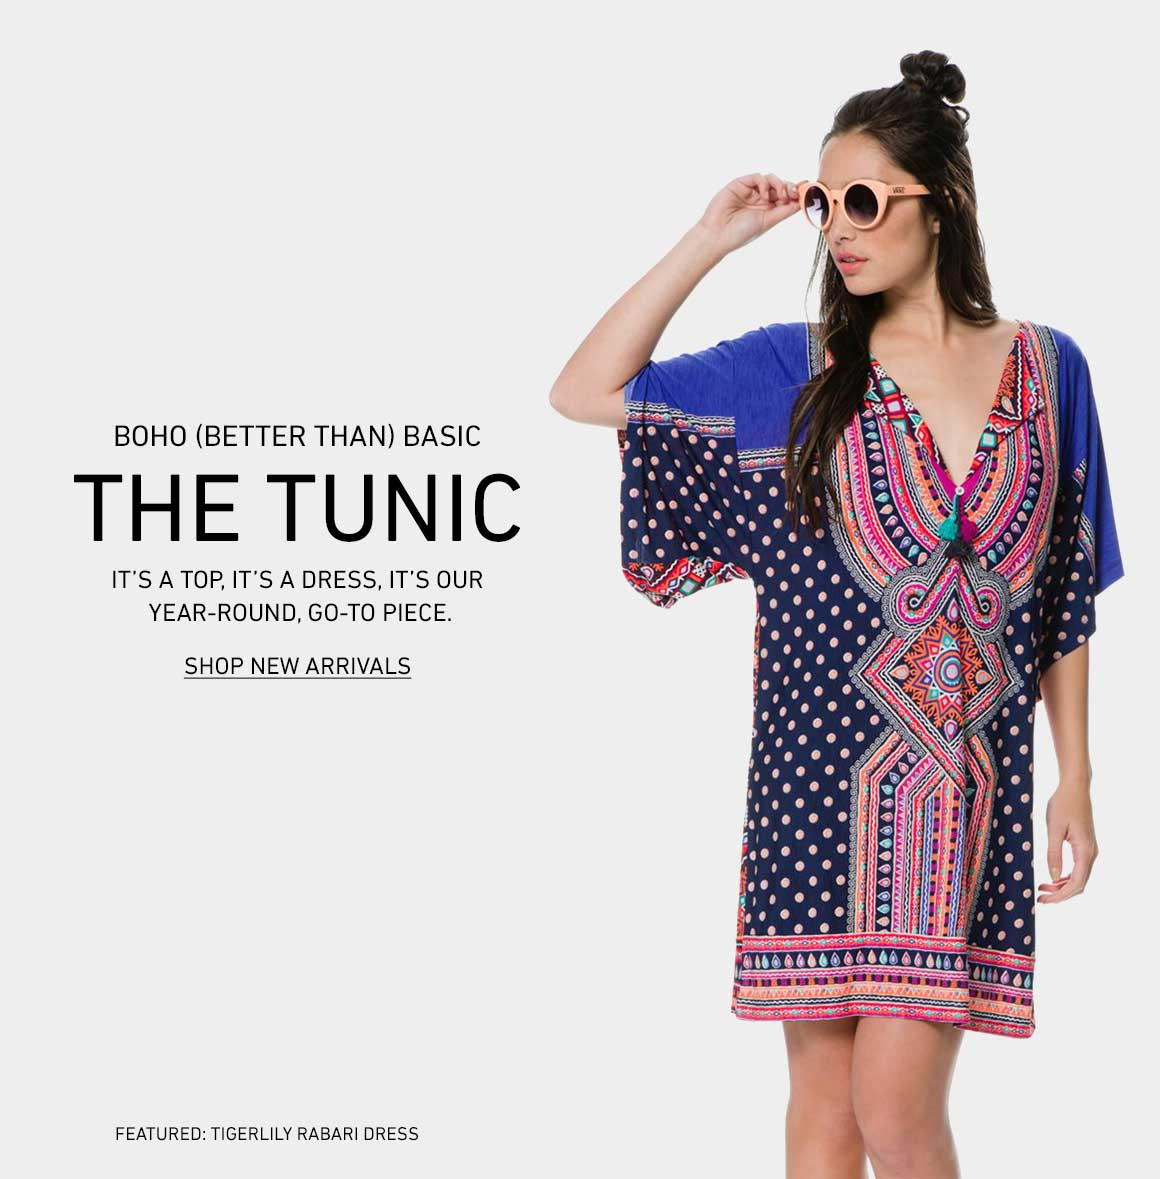 Boho Better Than Basic: The Tunic